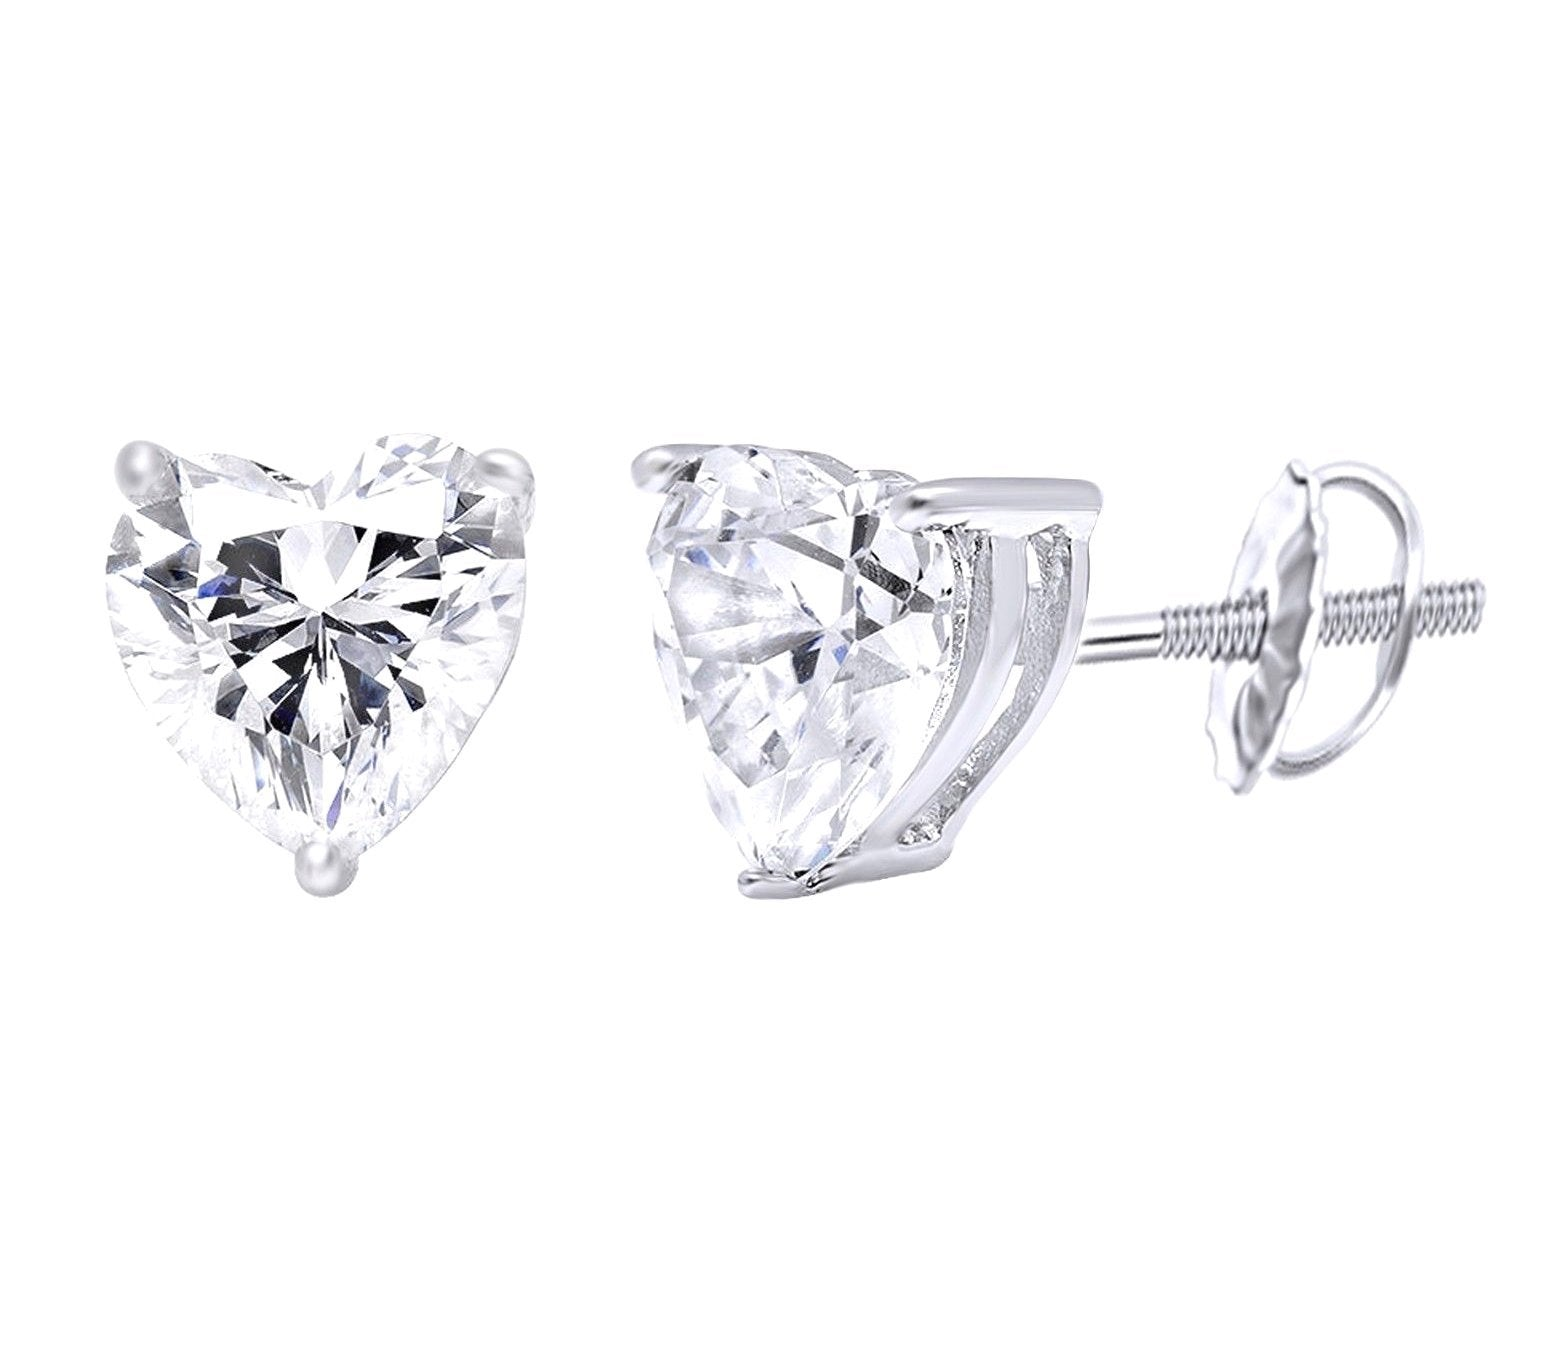 f7db92995 1.5 Ct. Heart Cut Brilliant Solid 14K White Gold Stud Earrings - Glamour  Life Diamonds